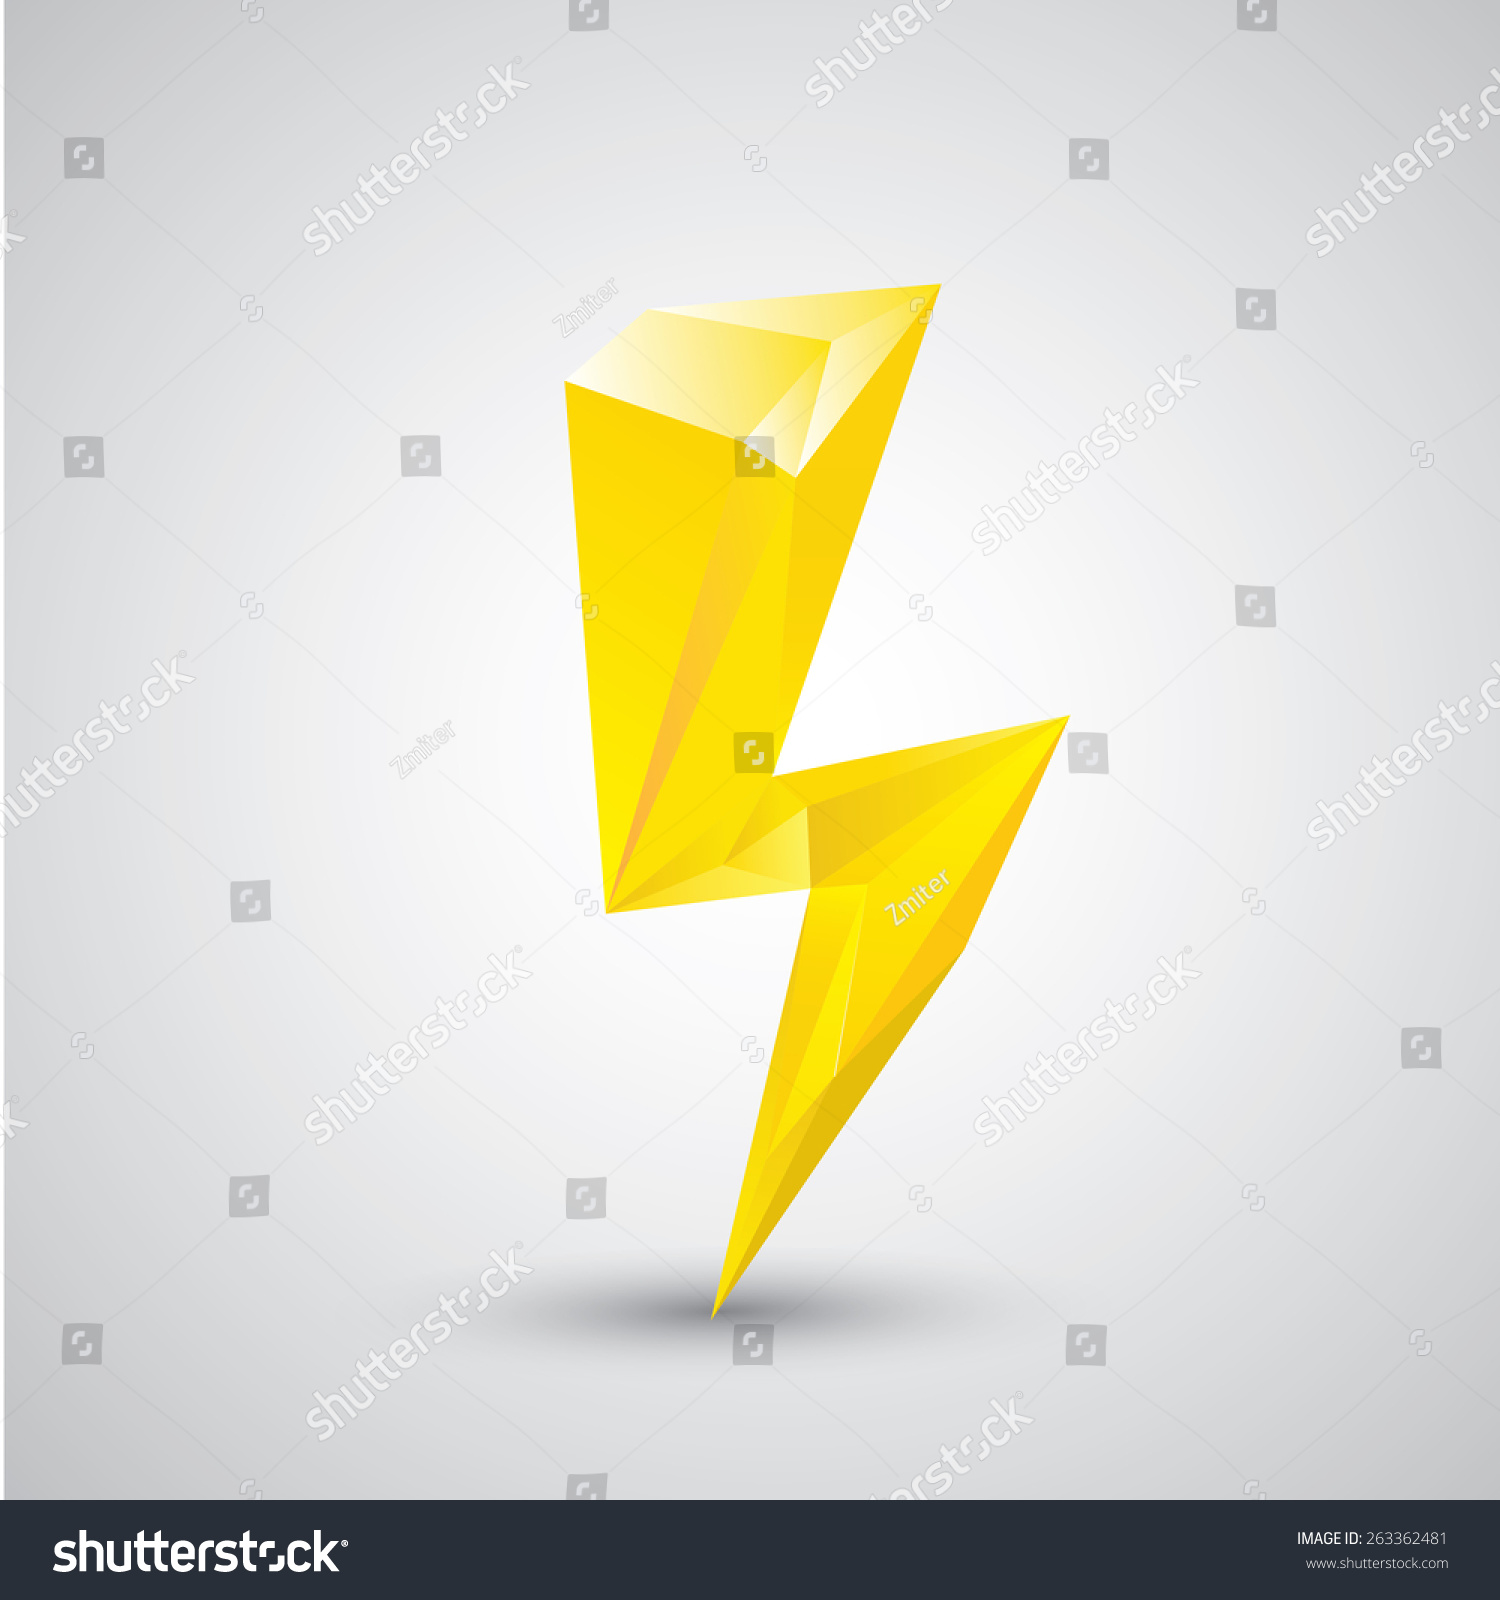 yellow lightning bolt logo quiz logo quiz canadian brands